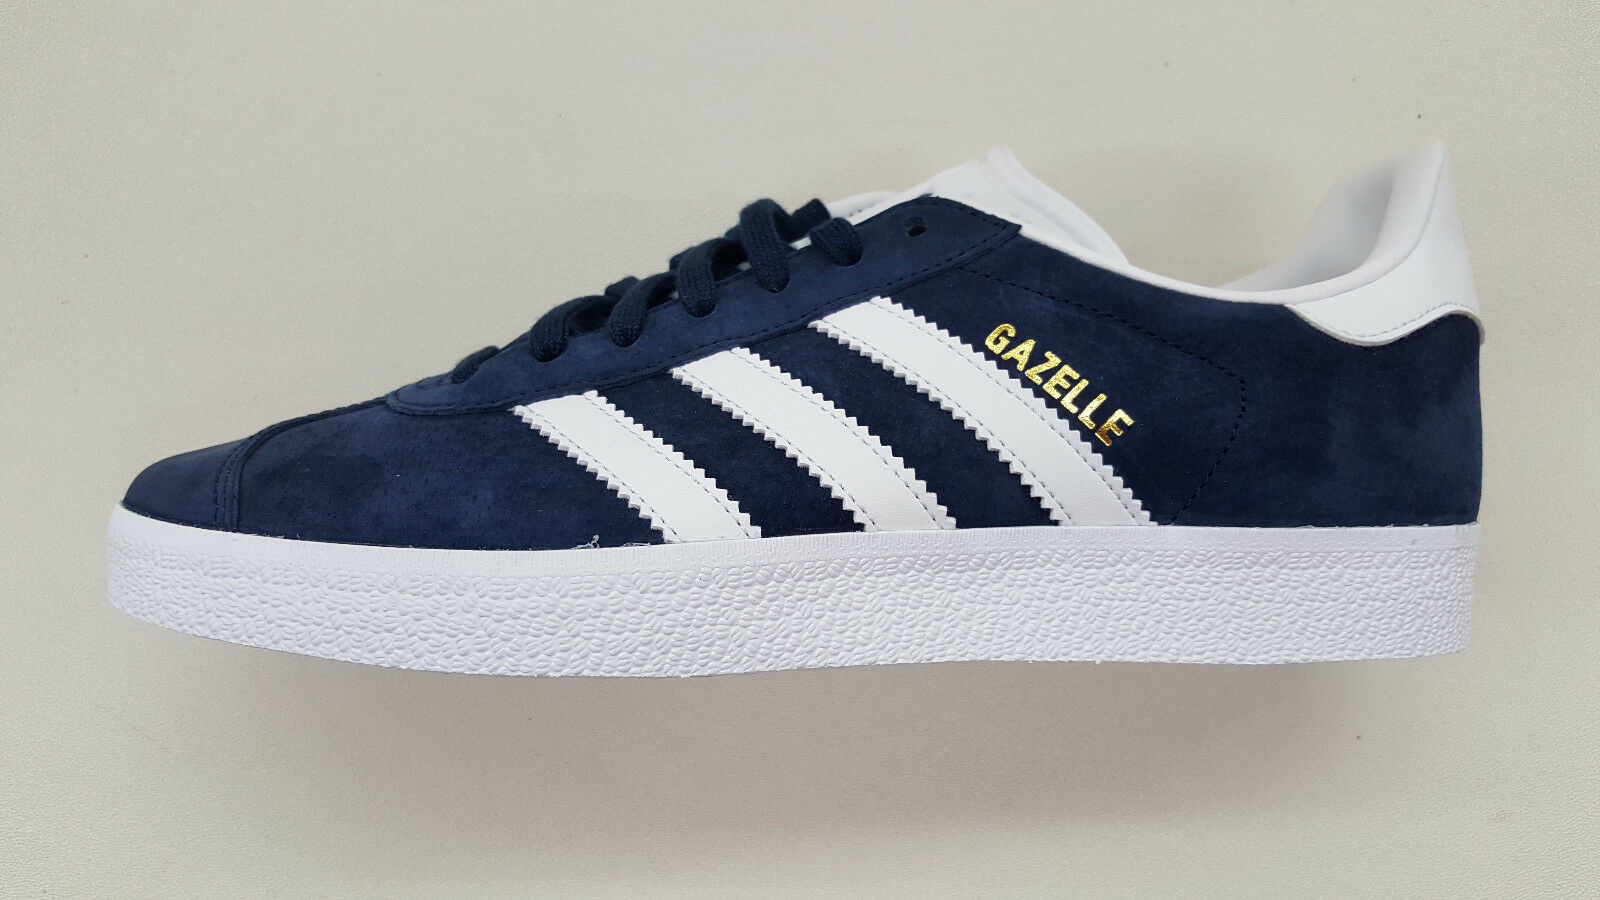 huge selection of 701c9 bc1cc ADIDAS ORIGINALS GAZELLE NAVY BLUE WHITE GOLD MENS SIZE CASUAL SNEAKERS  BB5478 high-quality